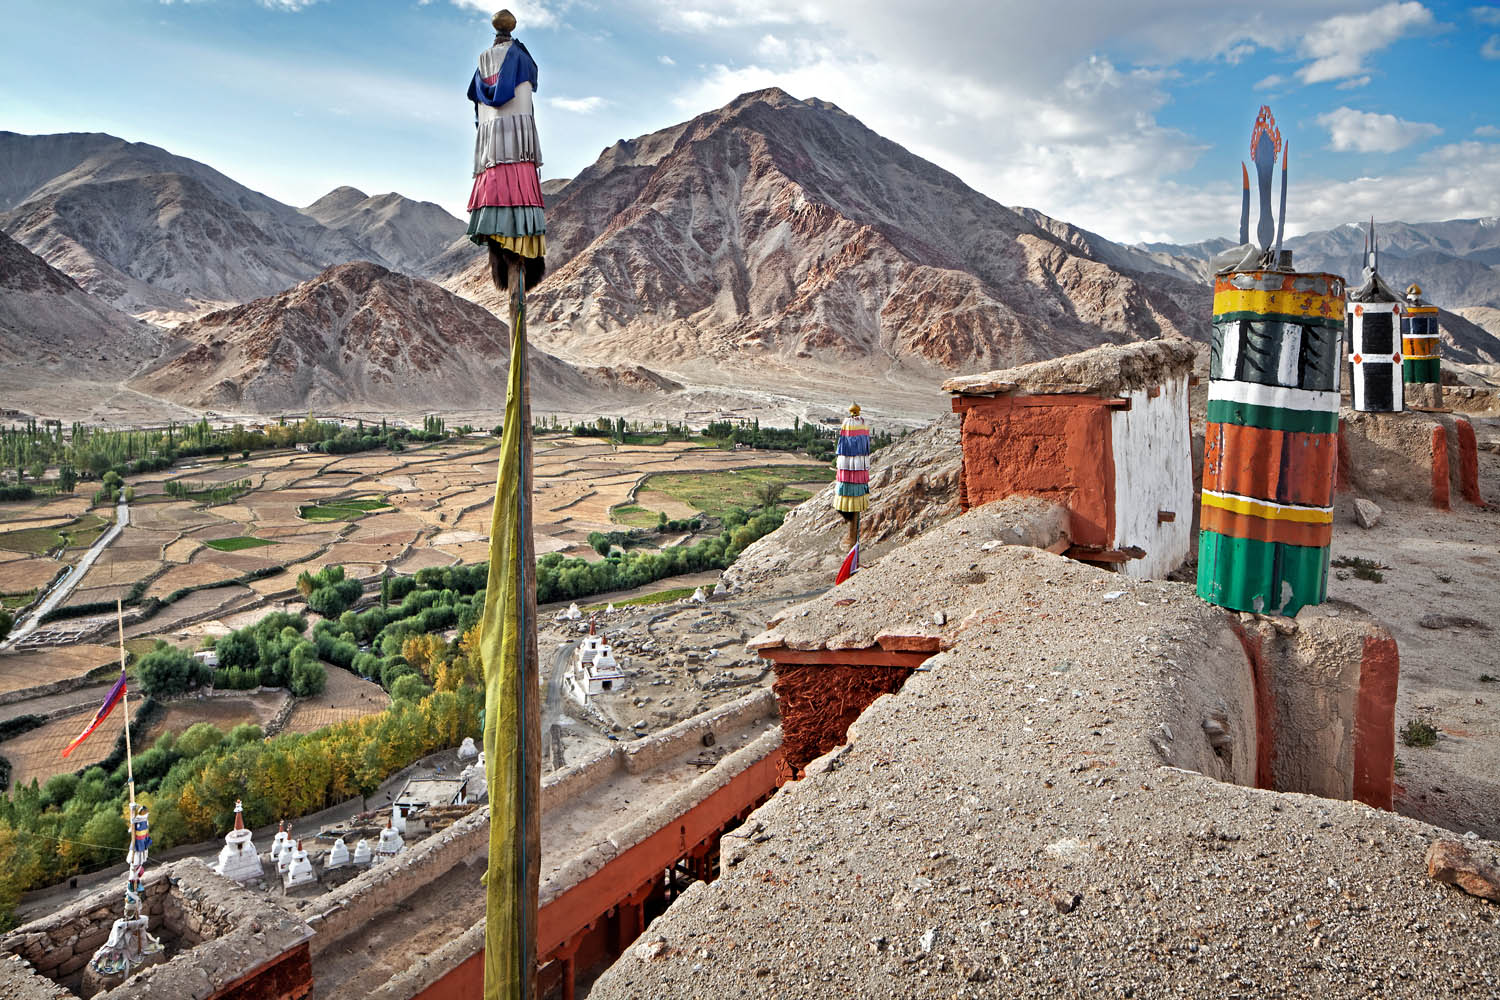 View from the roof, Chemdrey Monastery, Ladakh, India